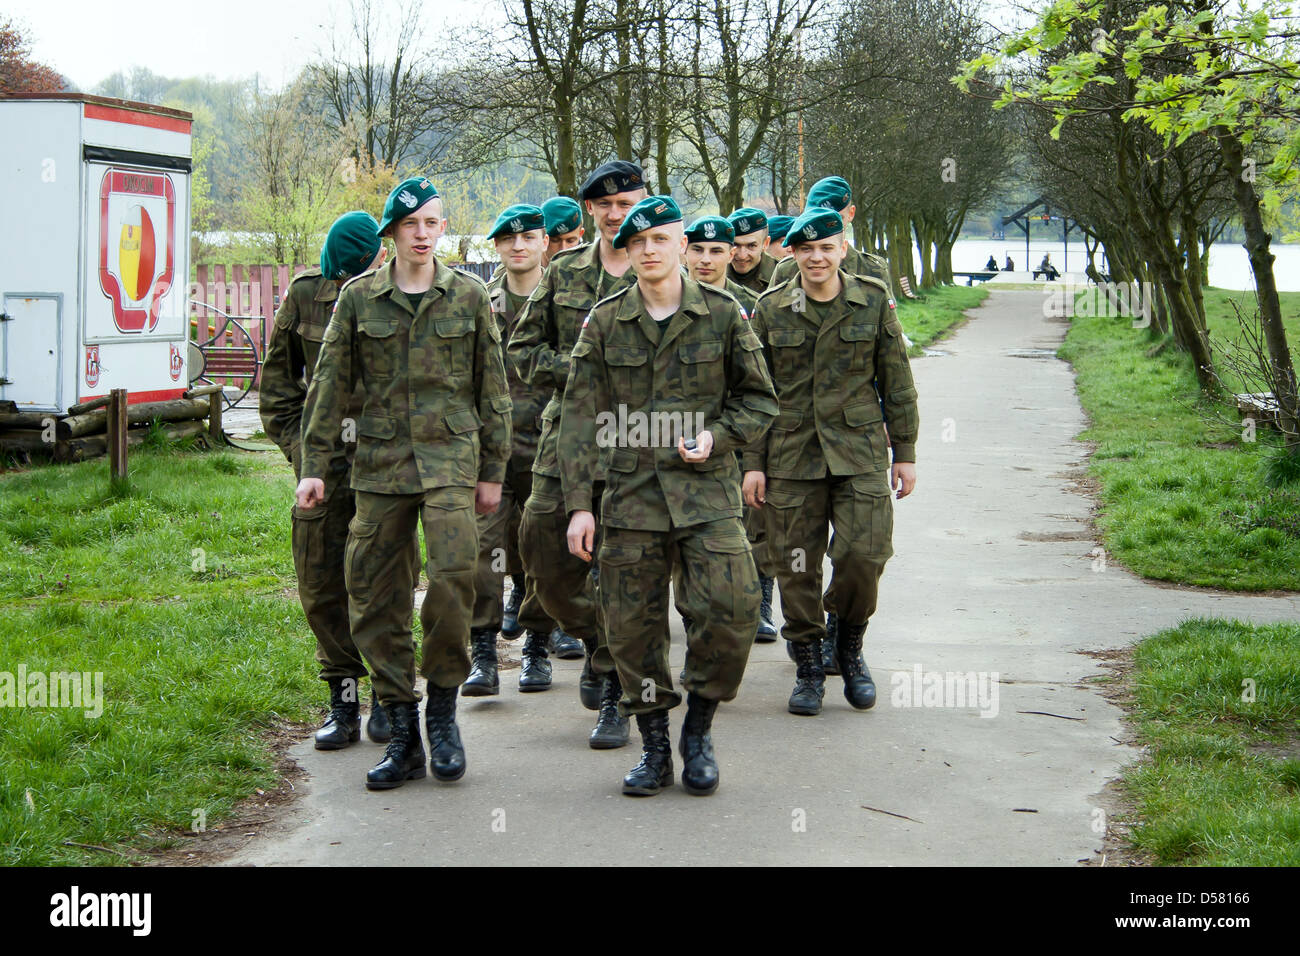 Poznan, Poland, Landstreitkraefte soldiers of the Polish Army in the road a recreational area - Stock Image